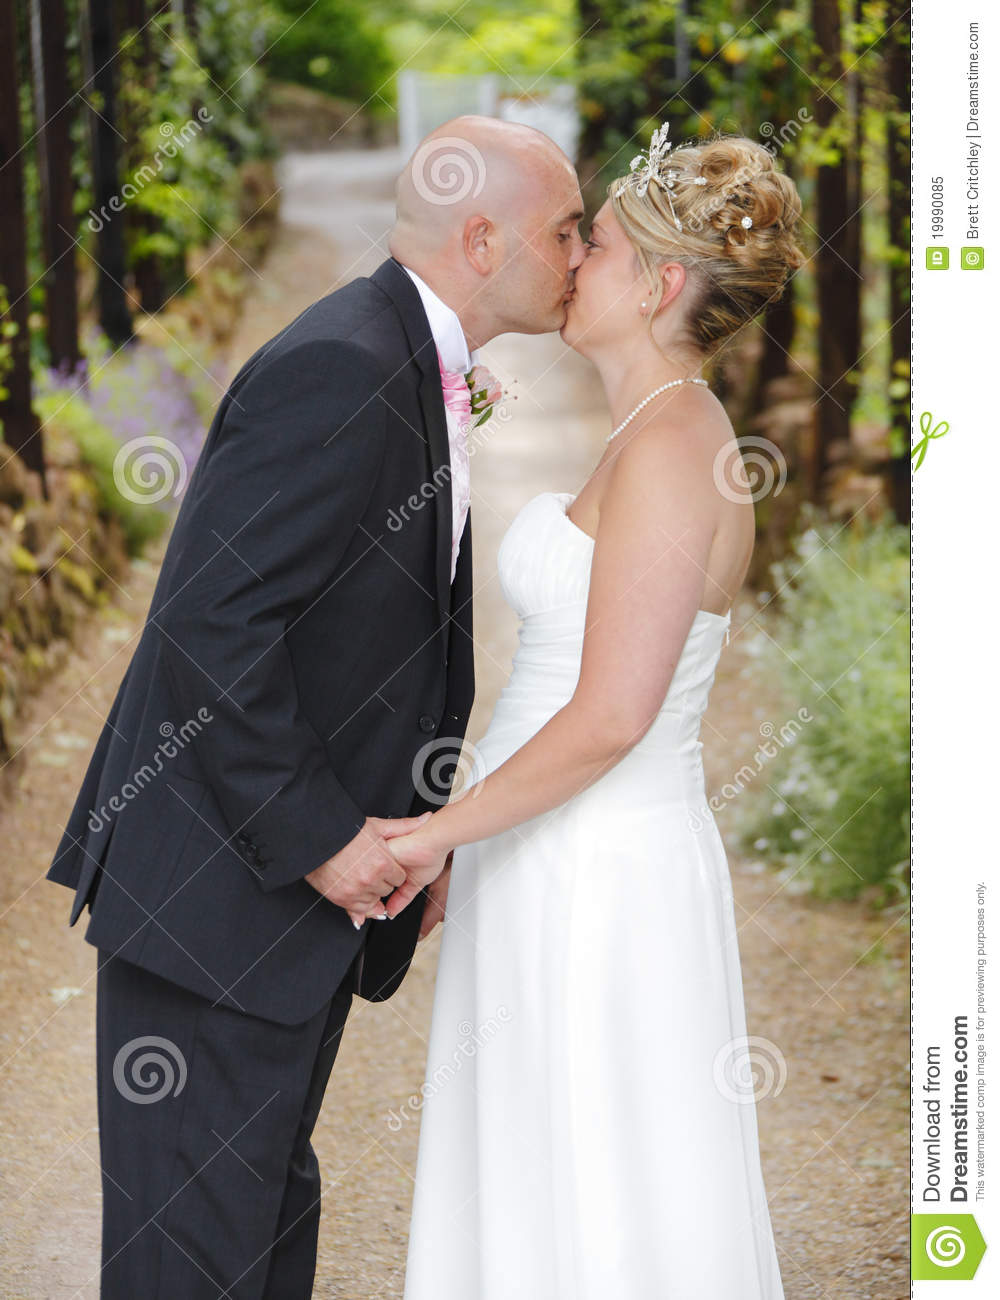 Bride and groom kiss stock image Image